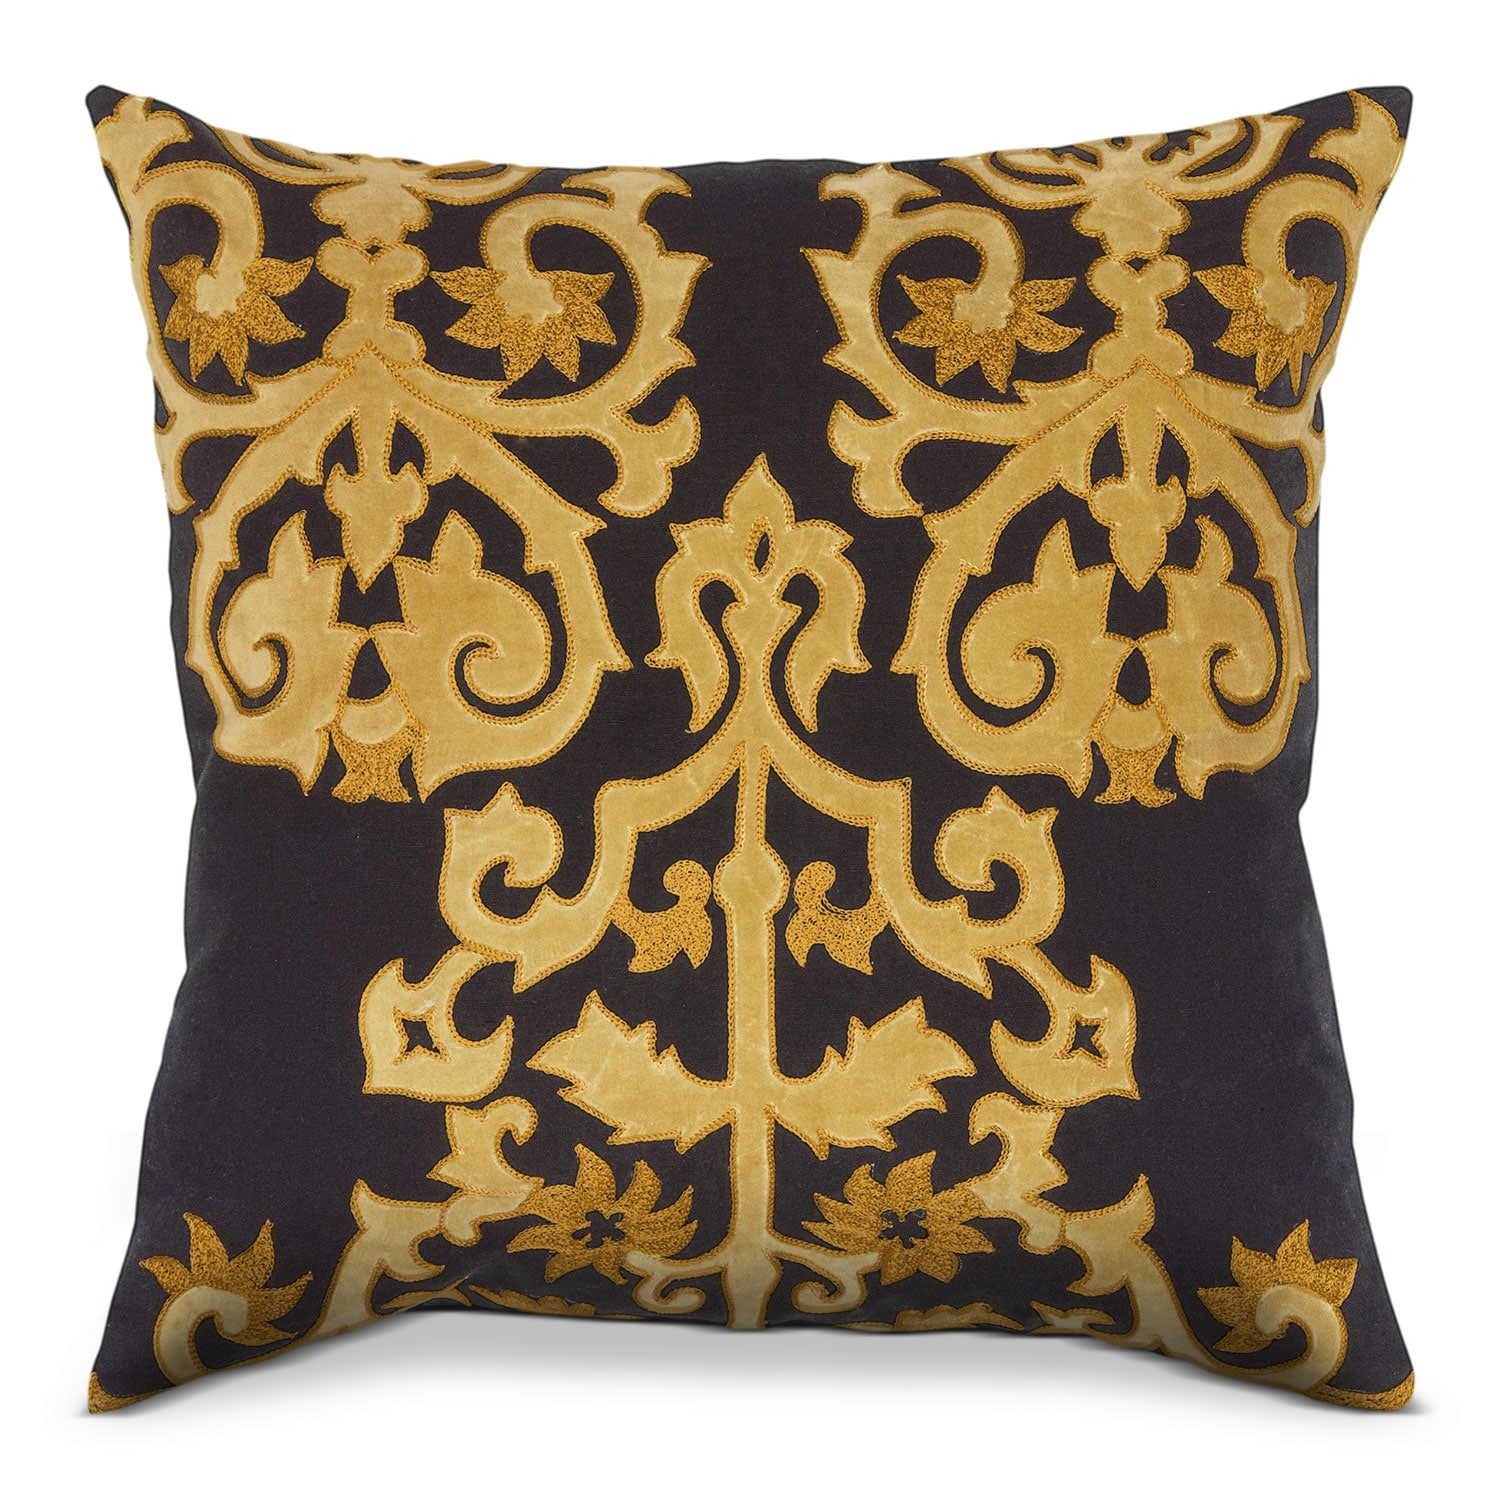 Tradewind Black Decorative Pillow